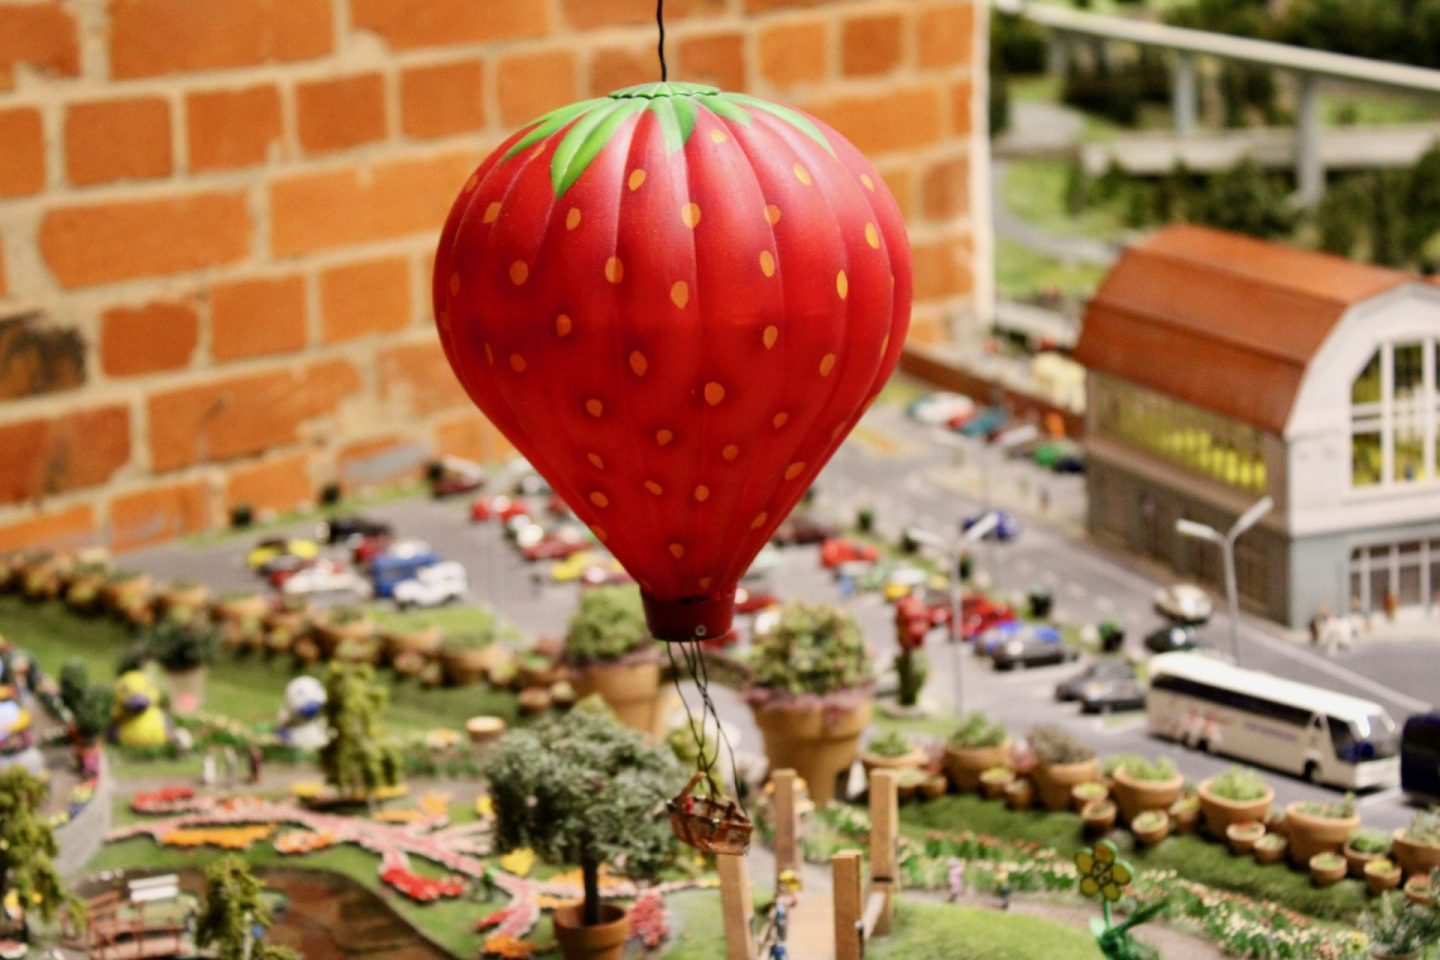 cheap european city break - inside minatur wunderland model railway museum. Image shows a strawberry hot air balloon floating over Hamburg